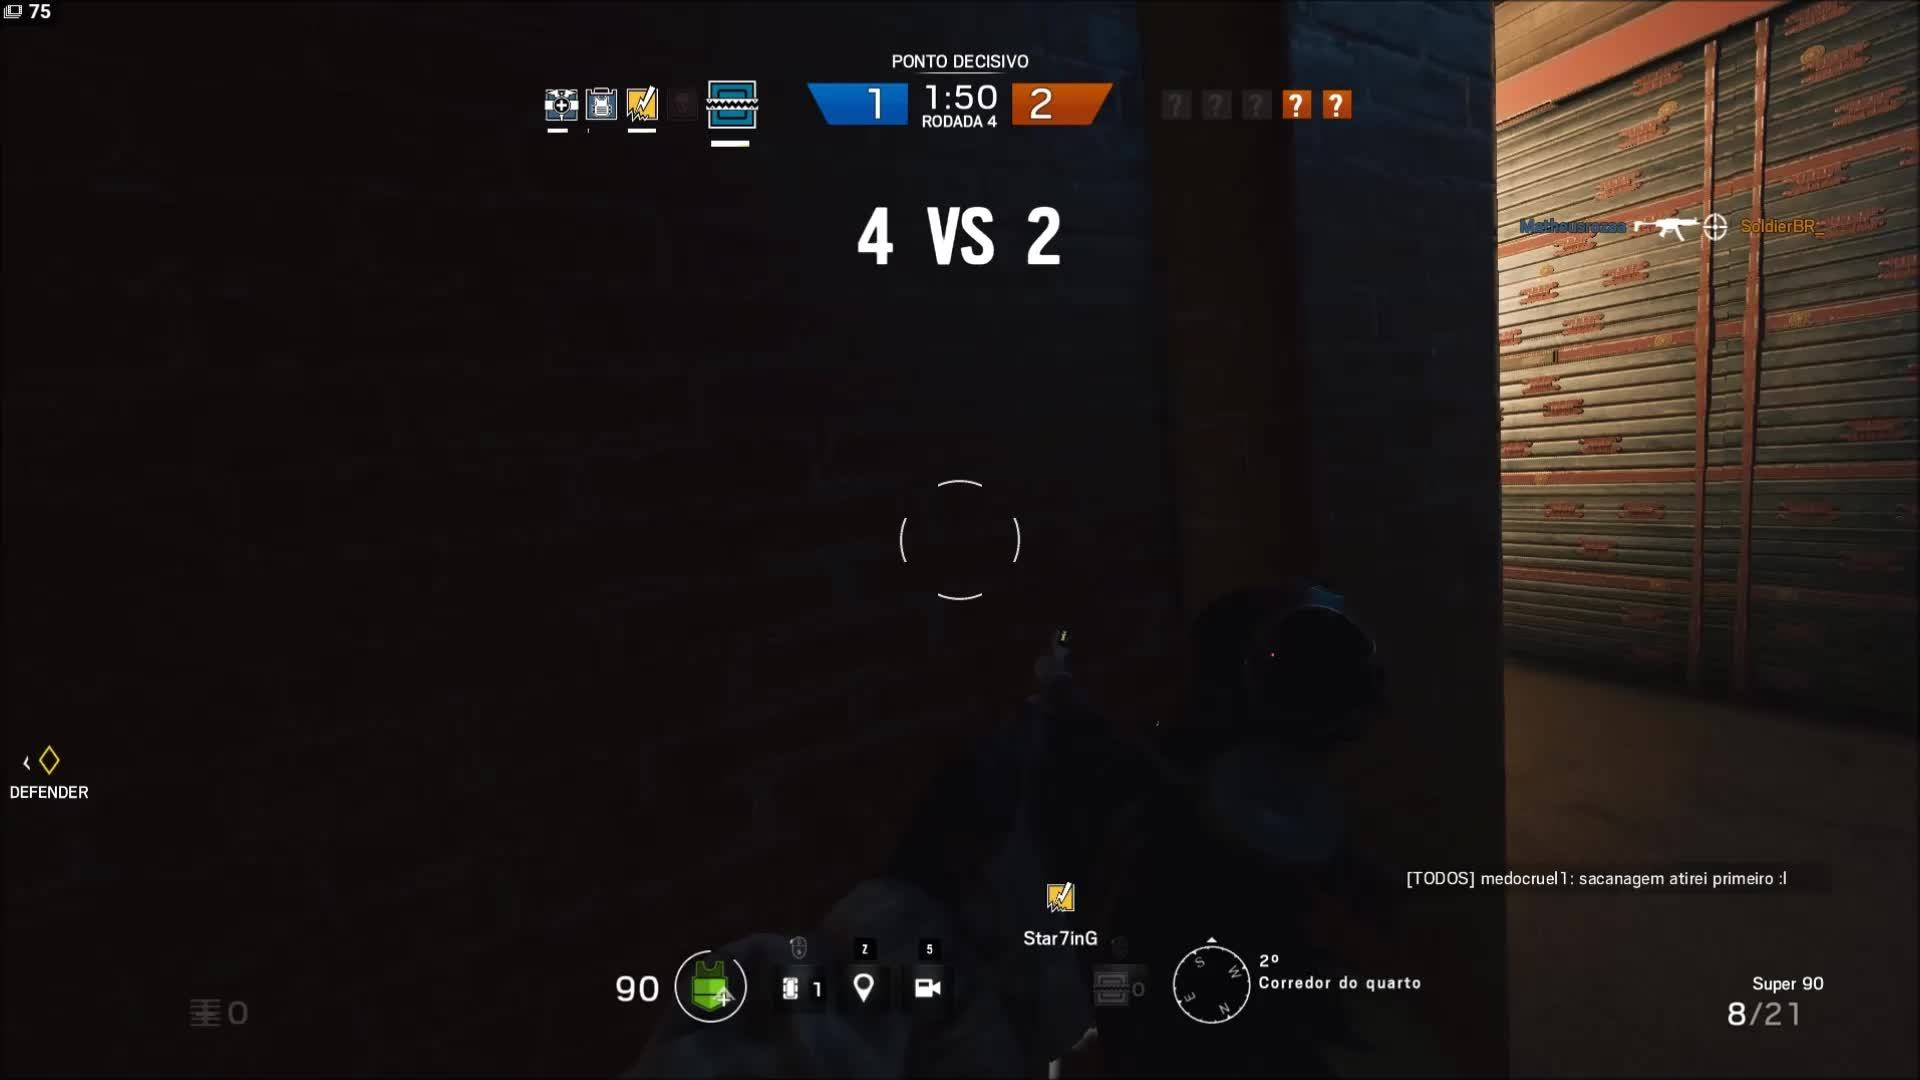 rainbow6, Frost Airstrike (aka a really far C4 kill) GIFs